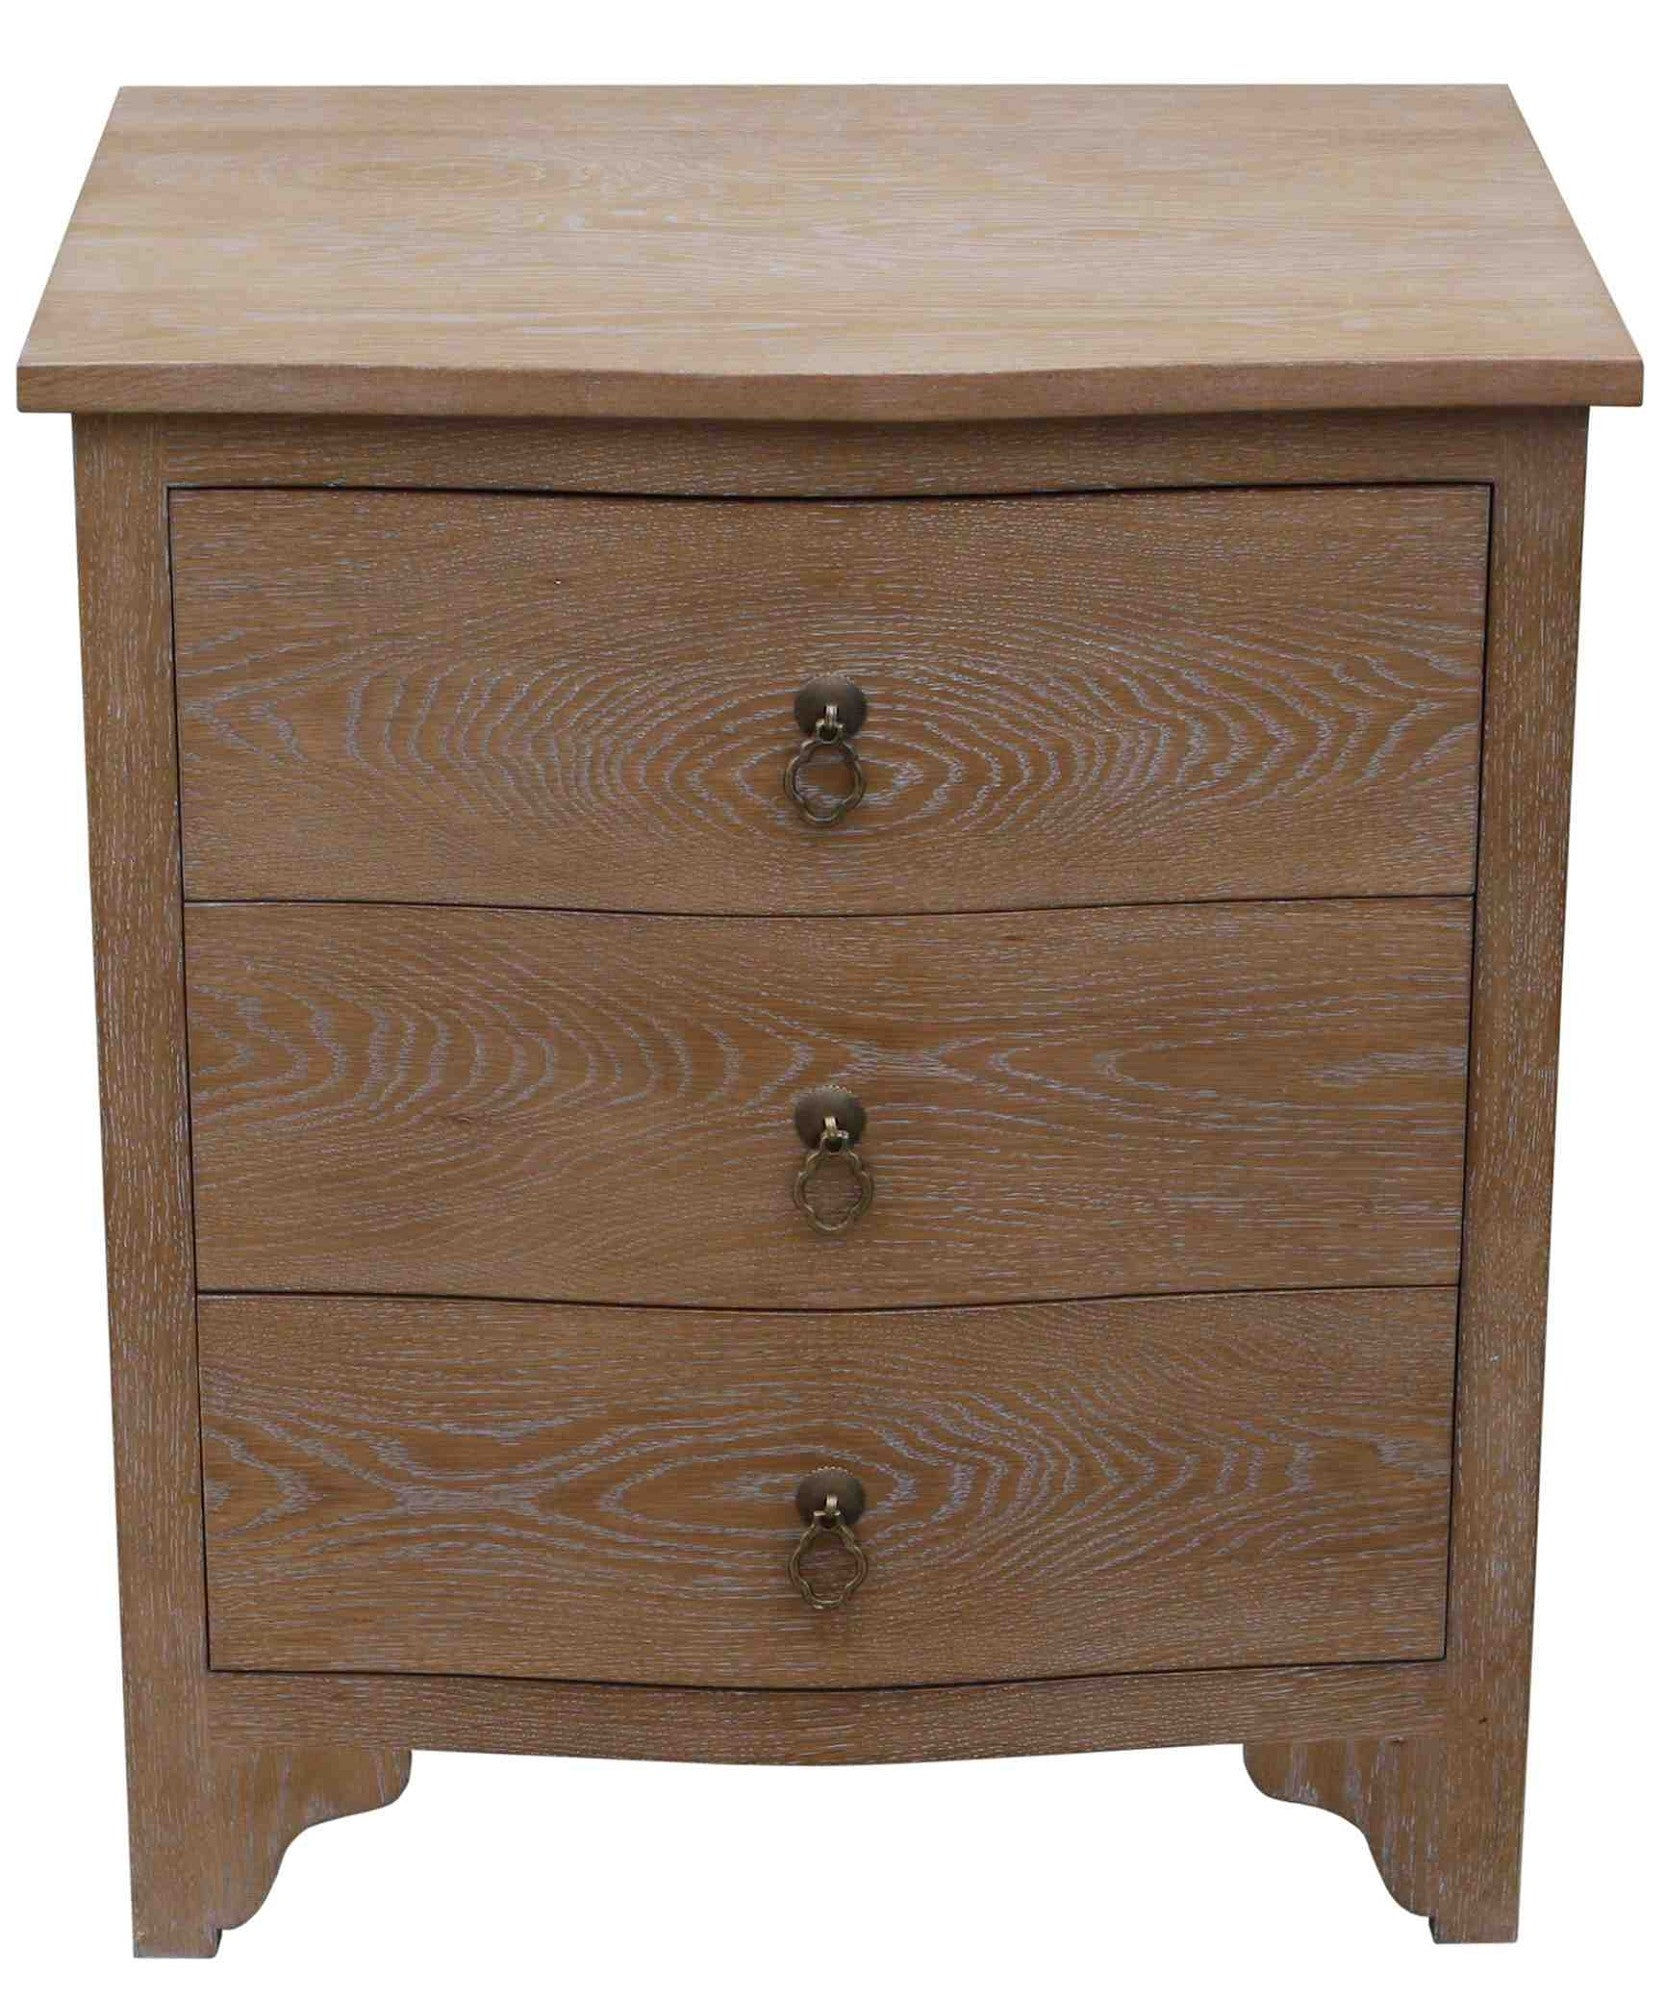 Cerused White Oak Side Tables